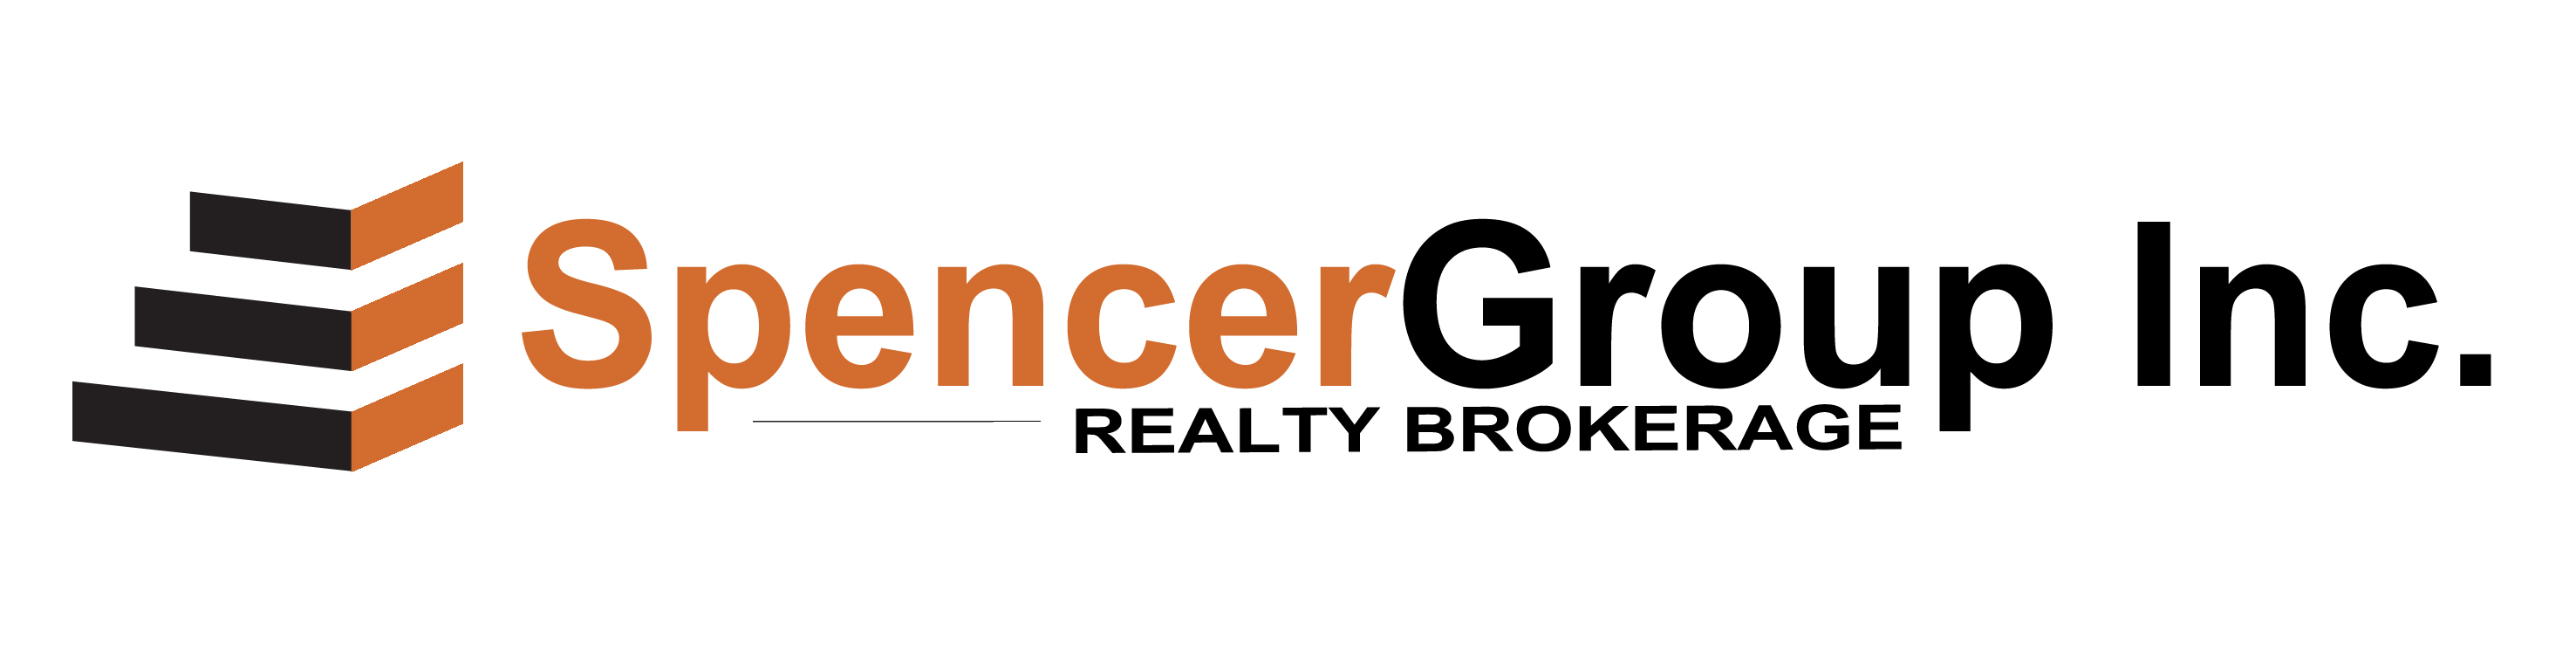 Spencer Group Inc., Realty Brokerage